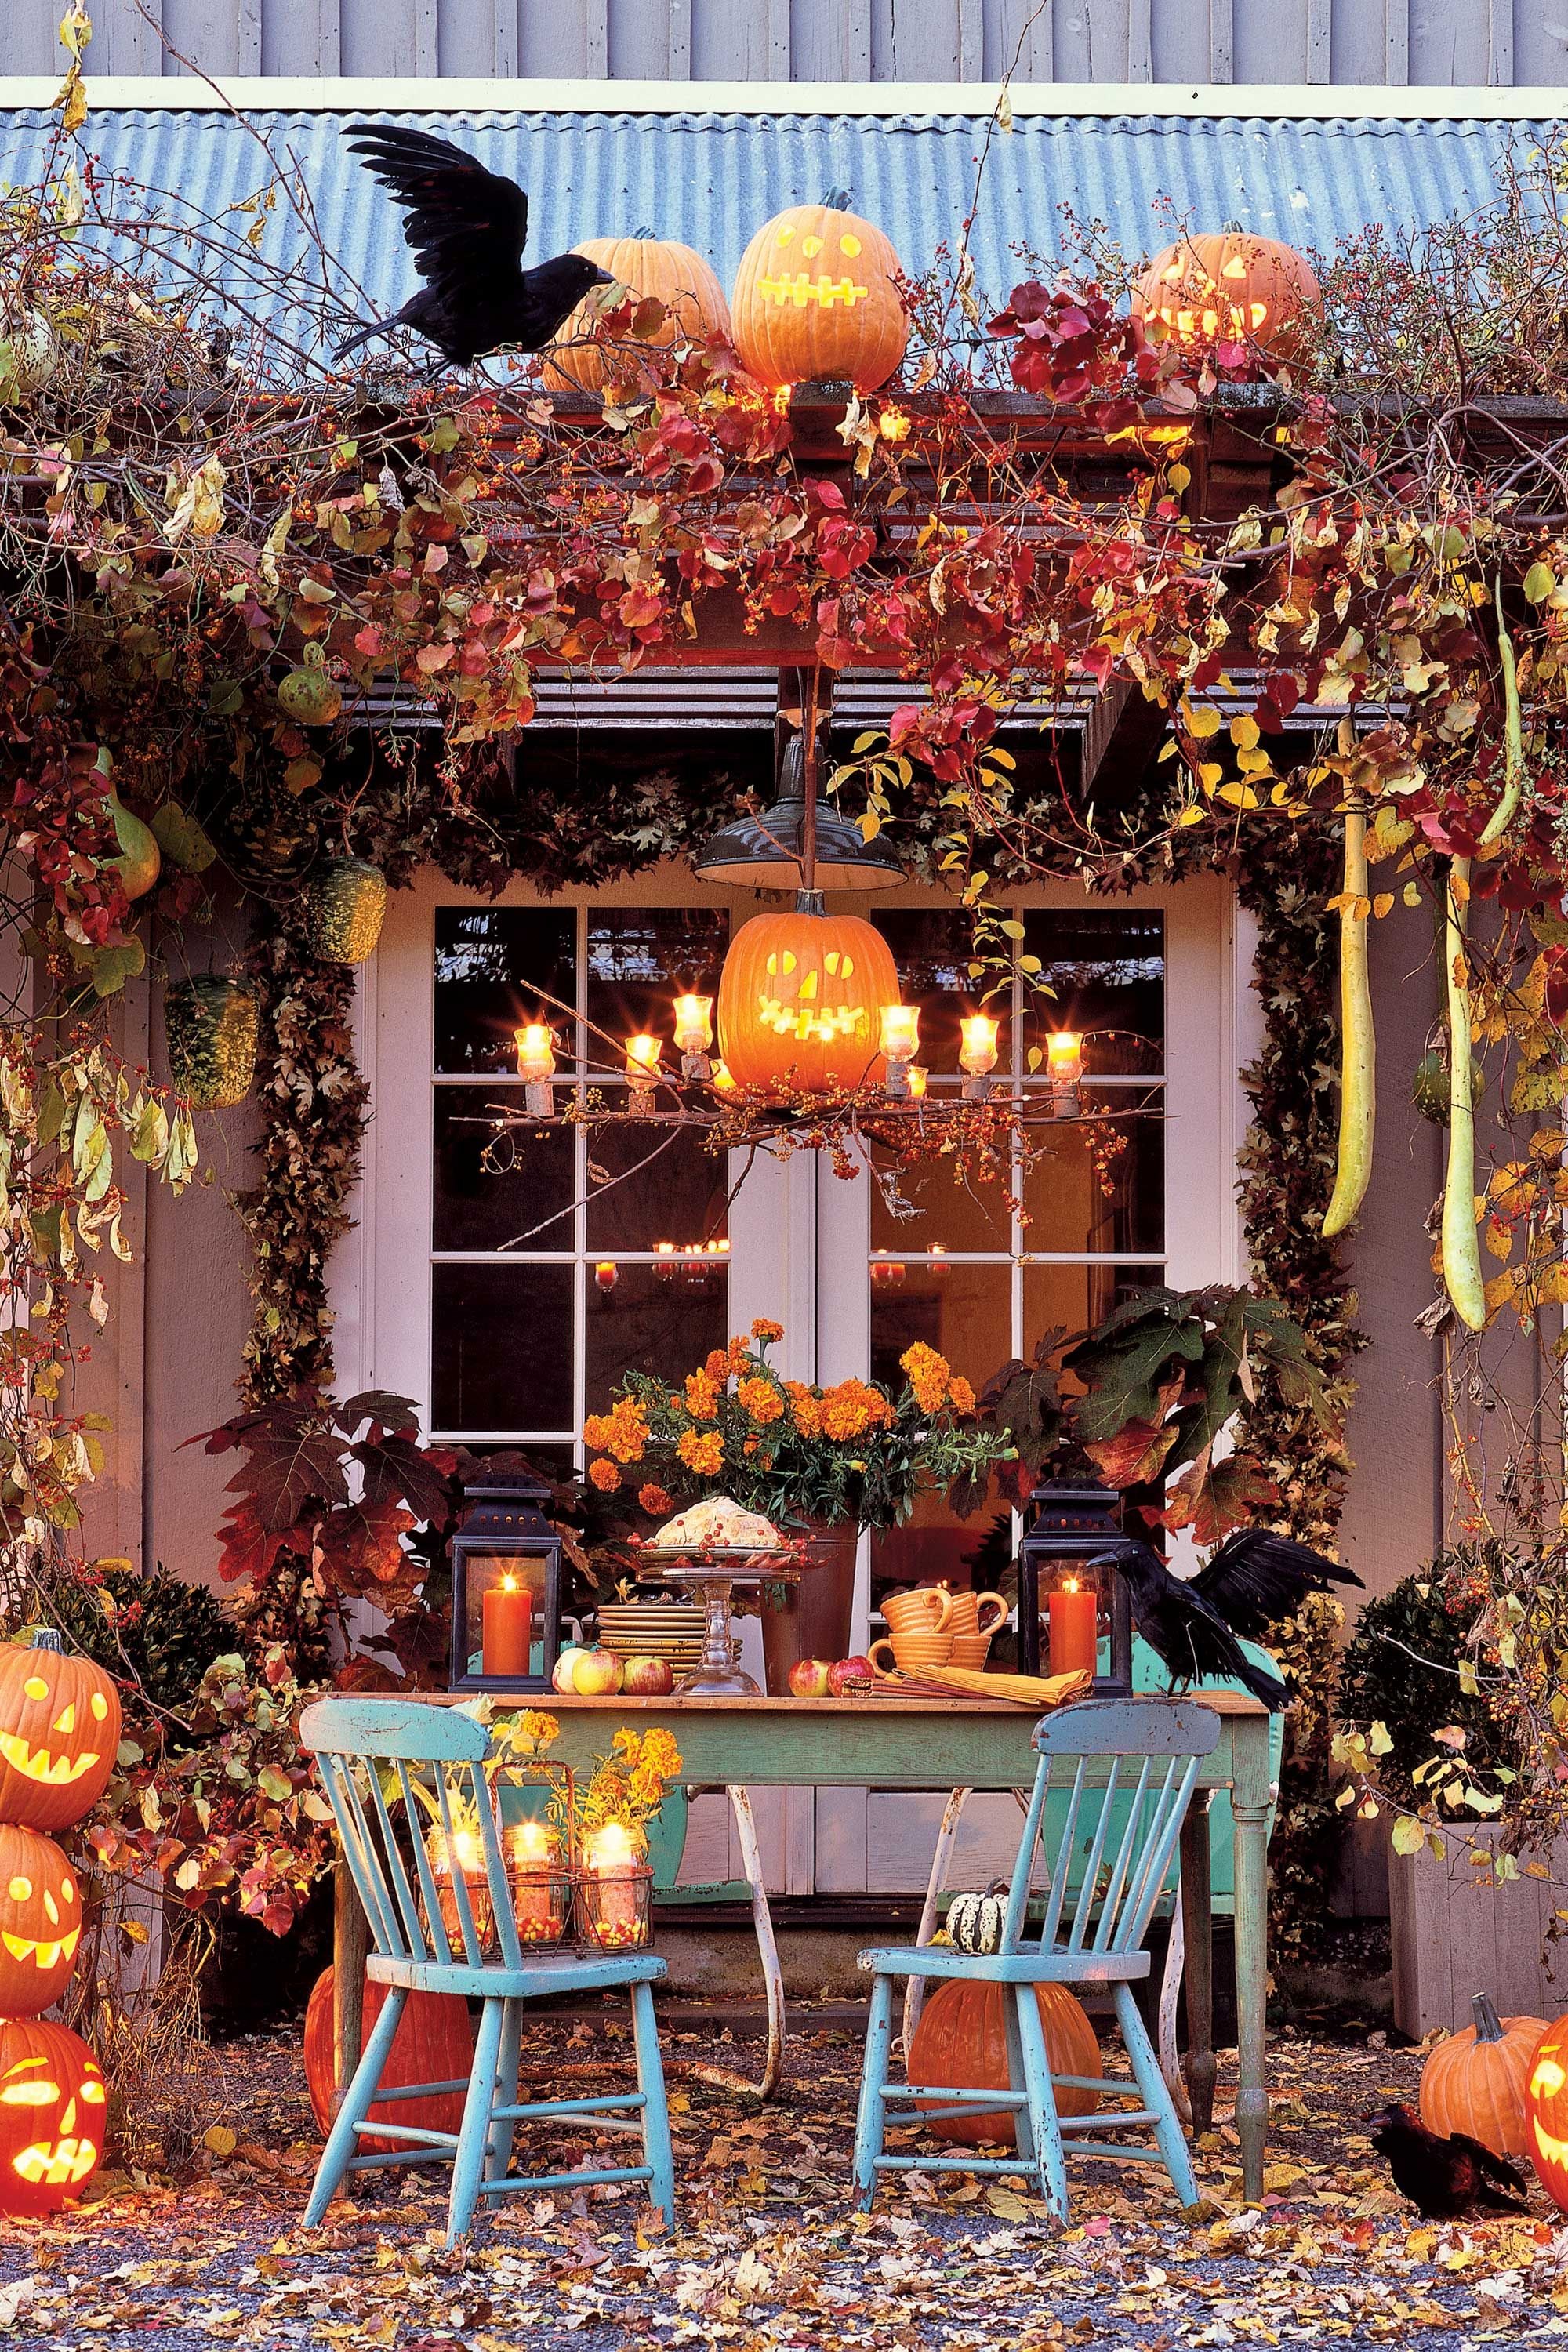 Put a Spell on Your Neighbors With These DIY Outdoor Halloween